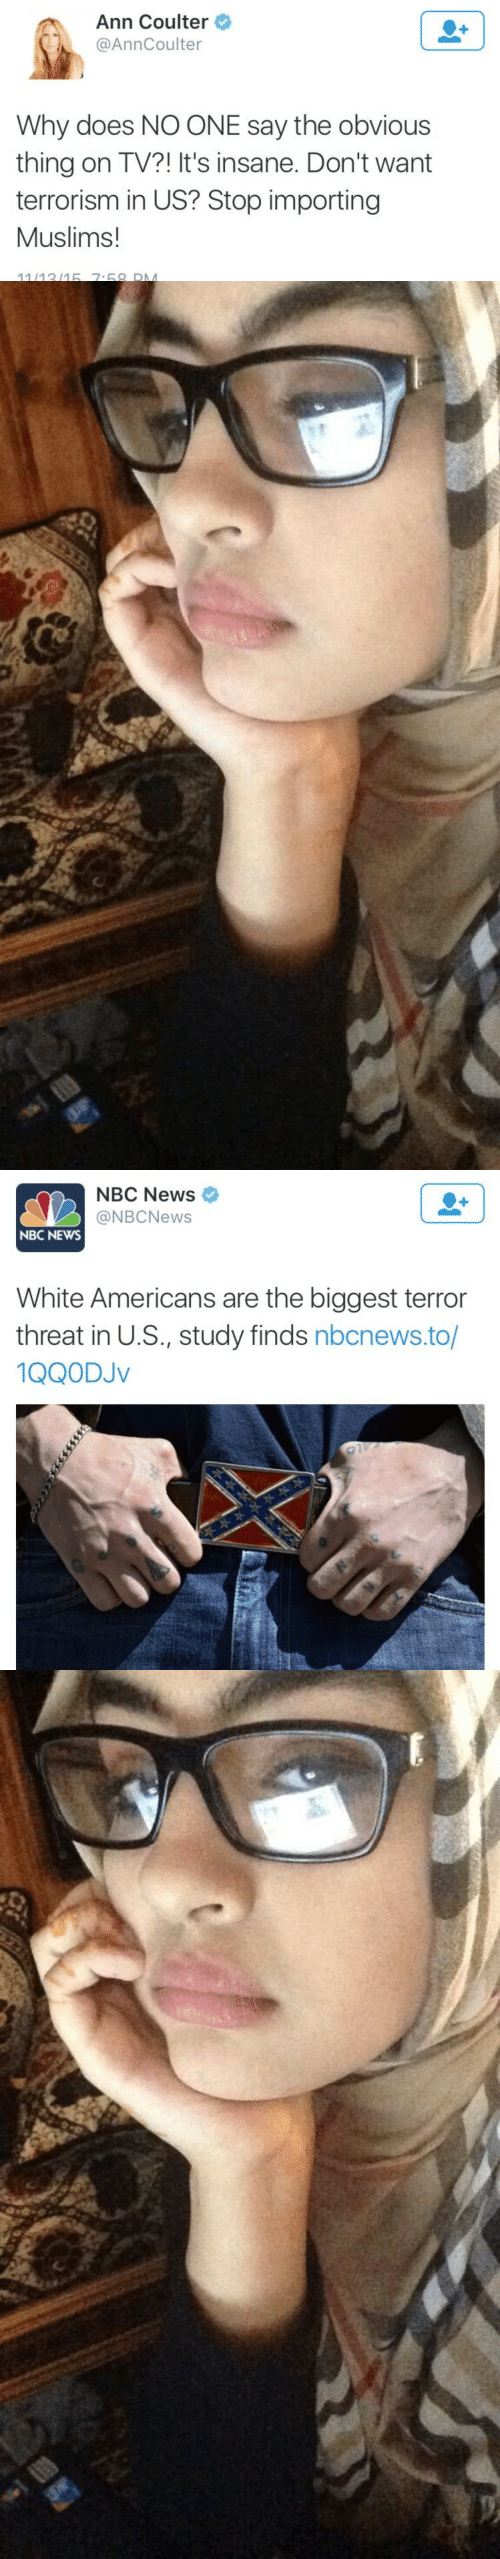 Nbc News: Ann Coulter  @AnnCoulter  Why does NO ONE say the obvious  thing on TV?! It's insane. Don't want  terrorism in US? Stop importing  Muslims!  11/1315 7-68 DM   NBC News  @NBCNews  NBC NEWS  White Americans are the biggest terror  threat in U.S., study finds nbcnews.to/  1QQODJv